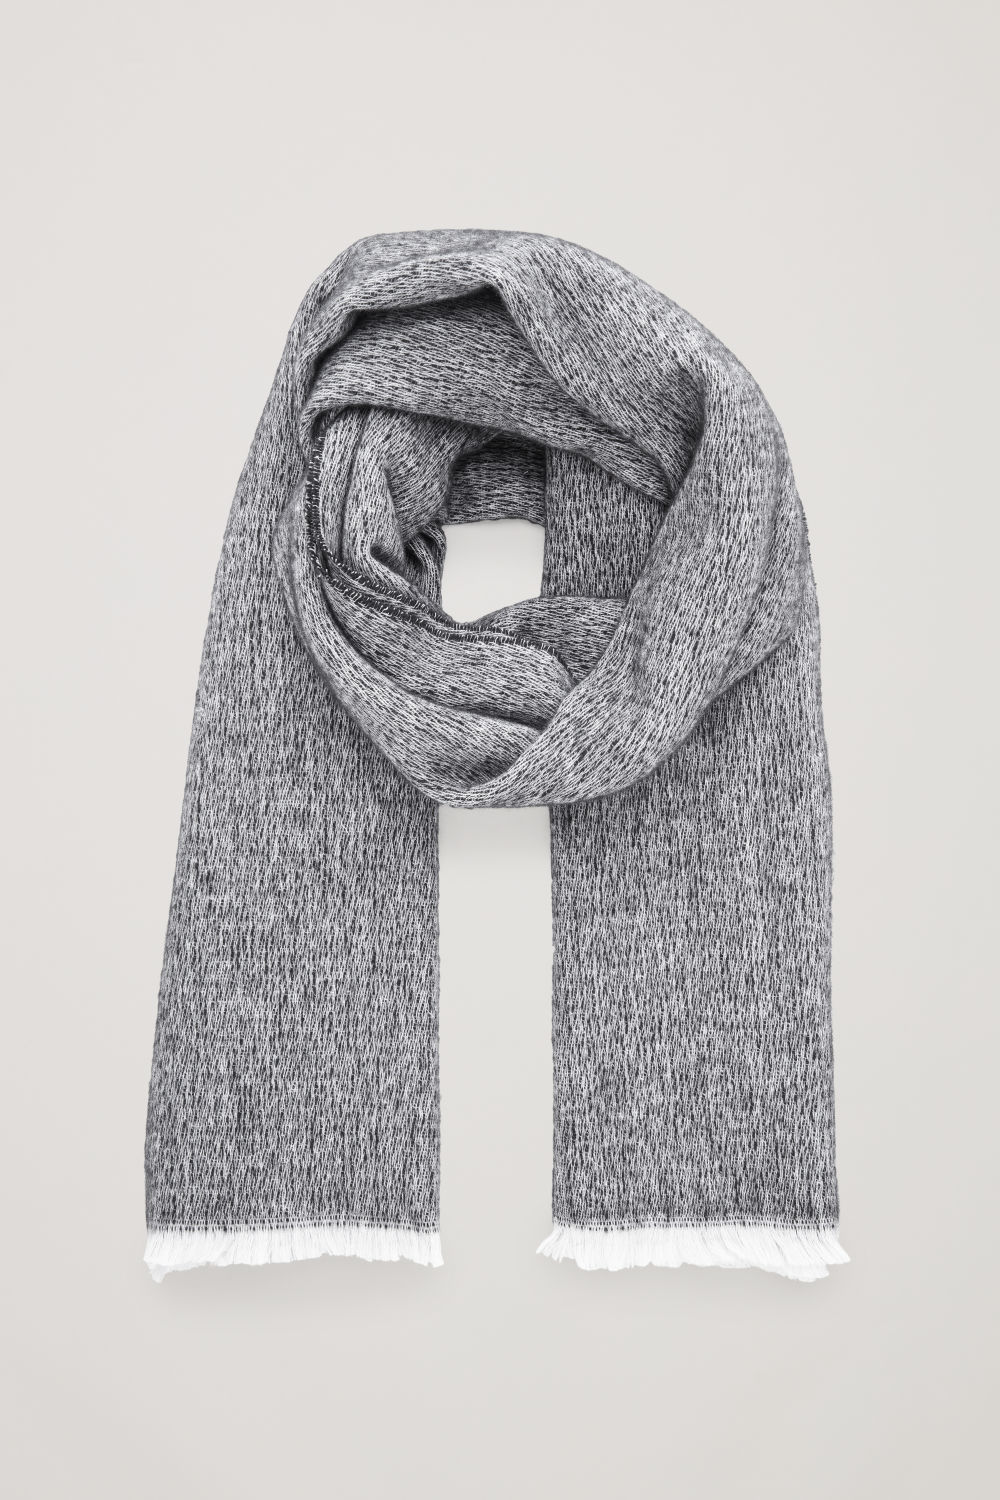 코스 COS COTTON-WOOL SCARF,Black \/ white